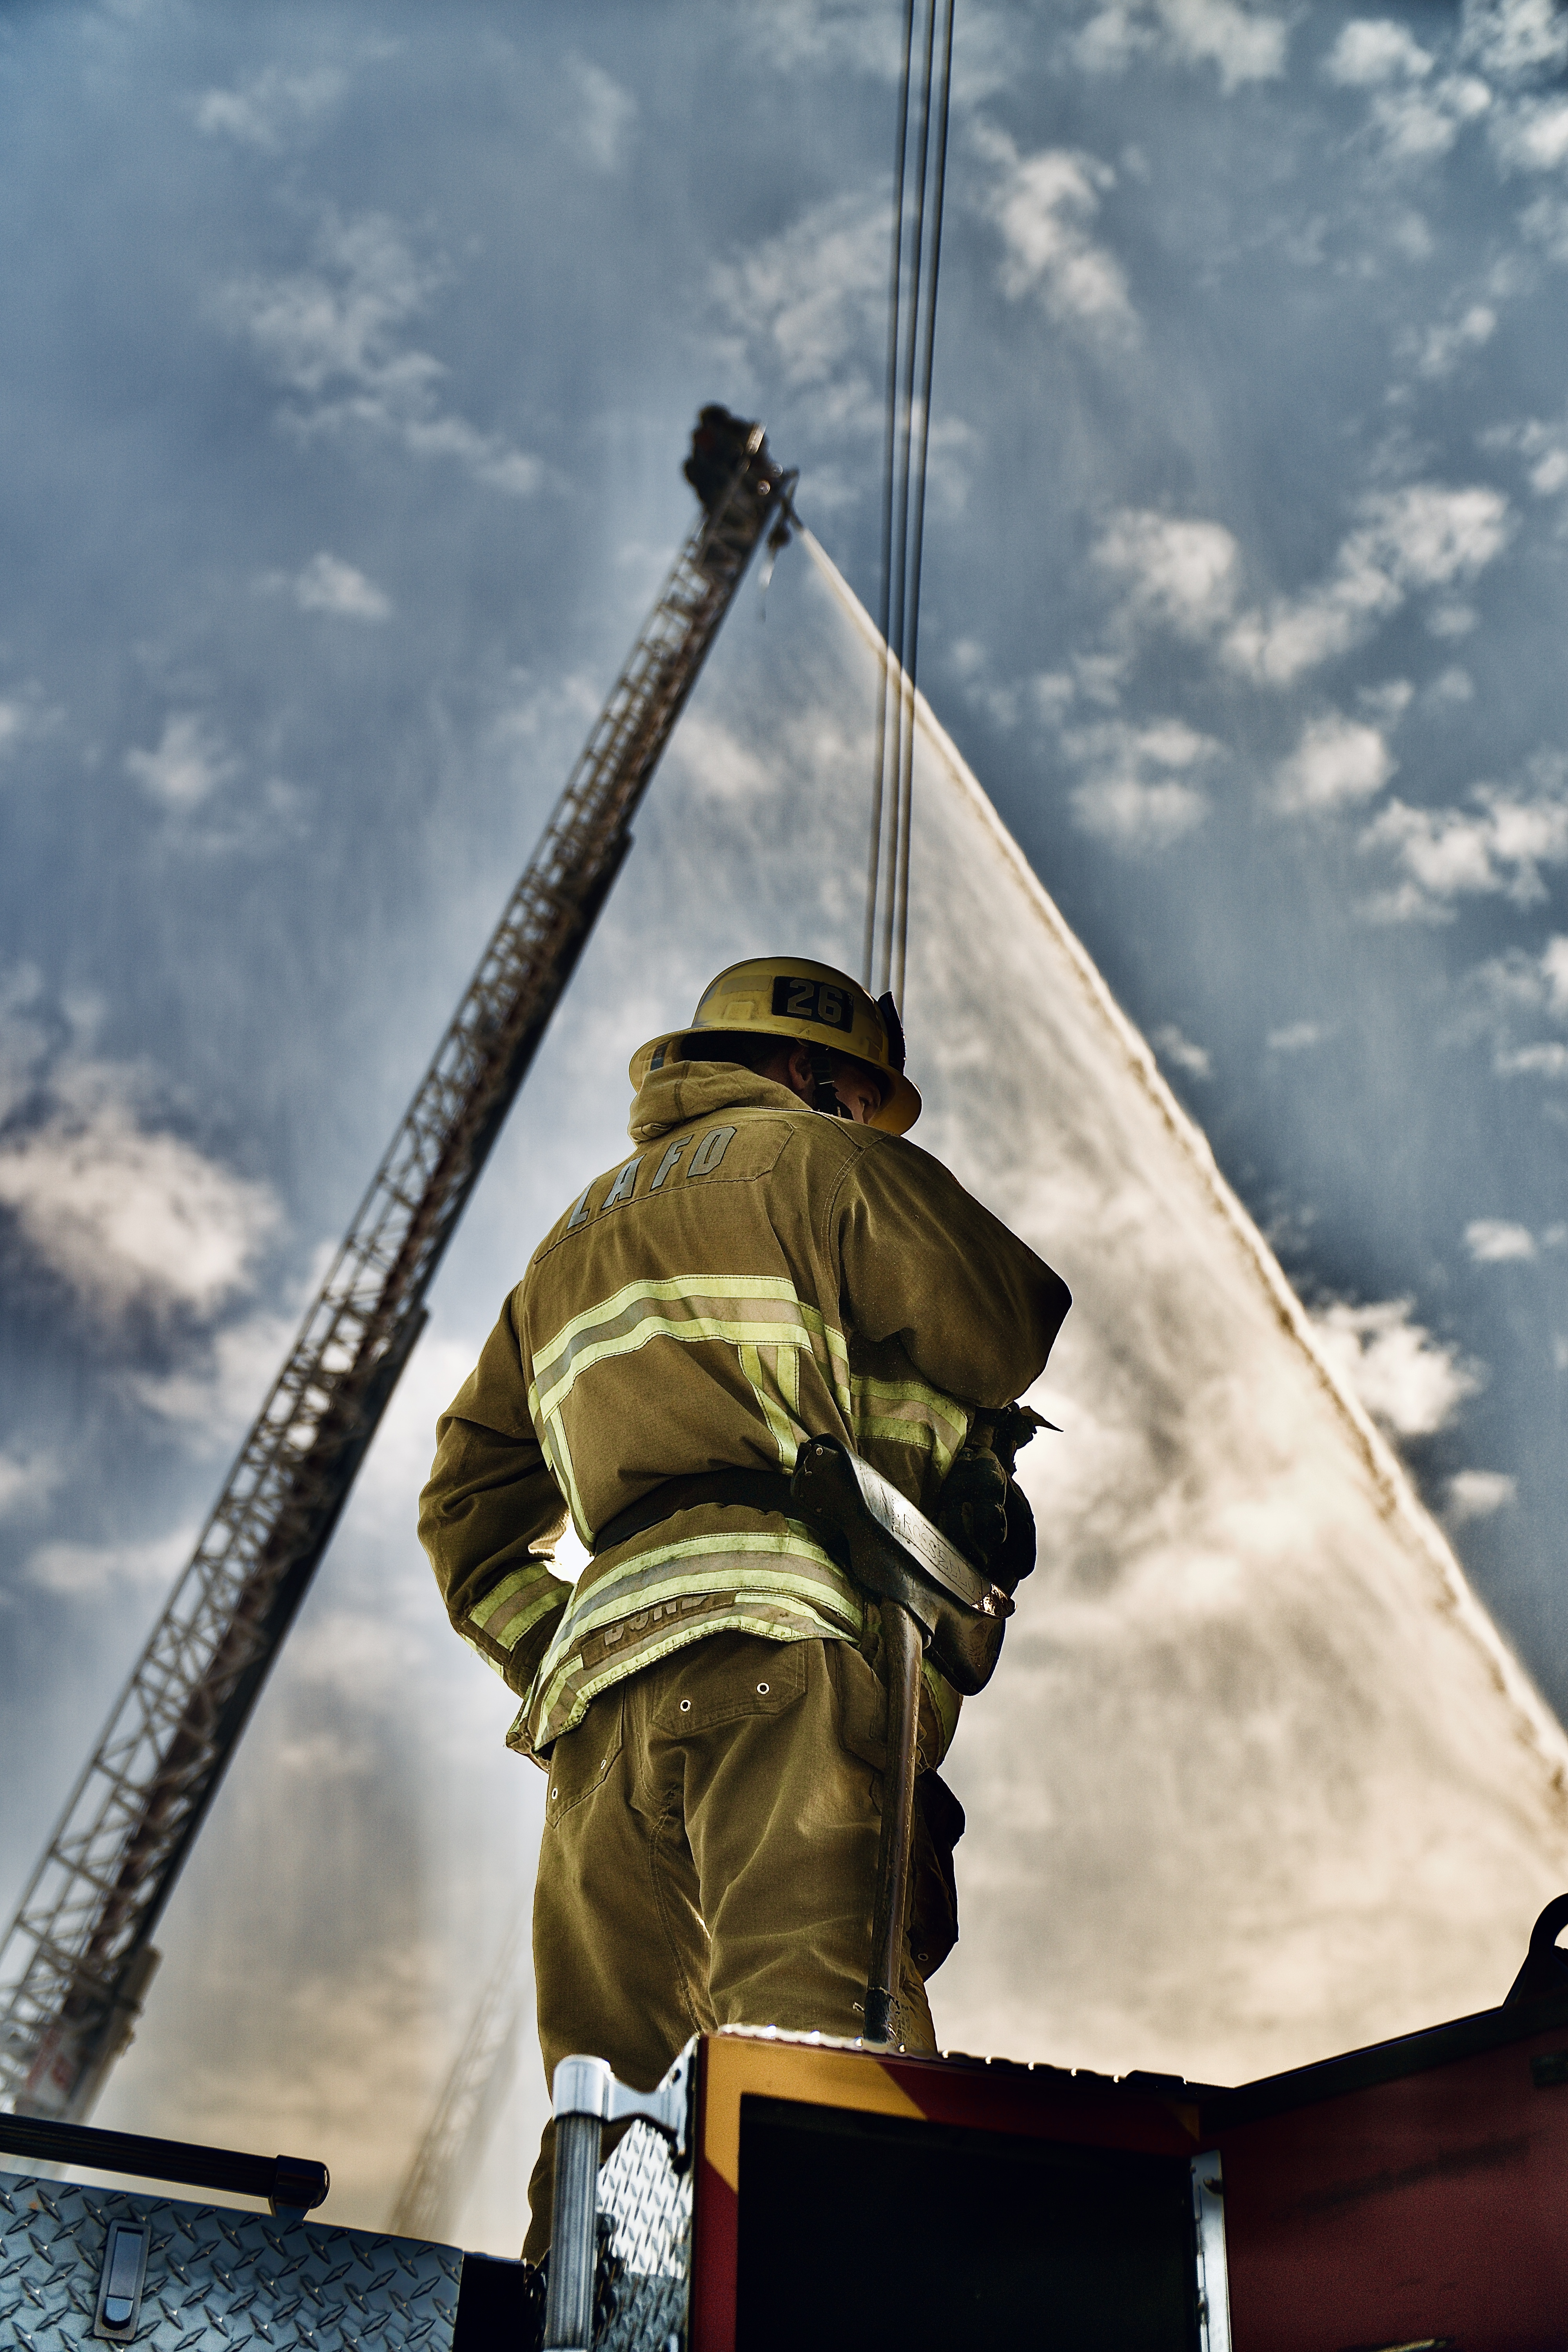 Firefighter standing on fire truck with aerial ladder in the background